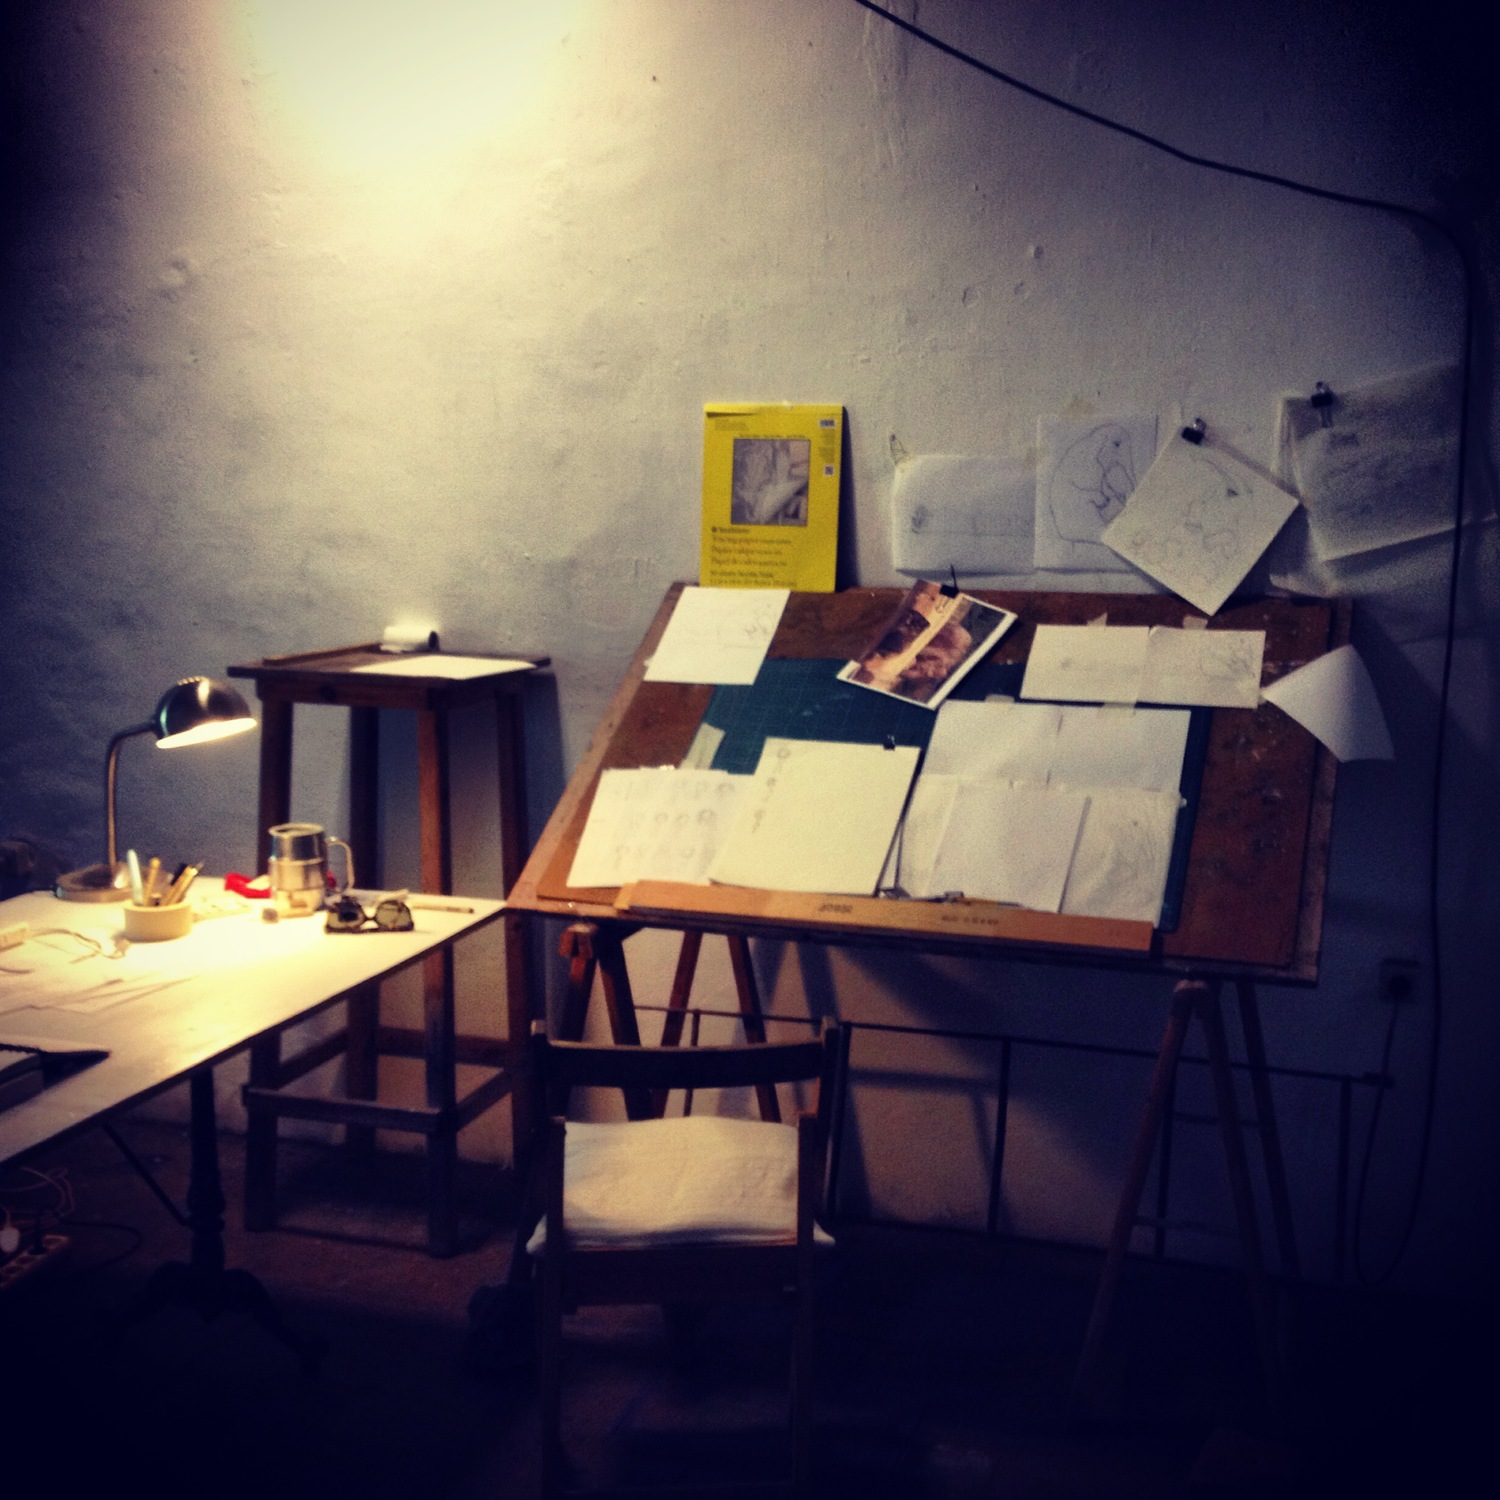 This was my amazing studio space in Can Serrat, Spain